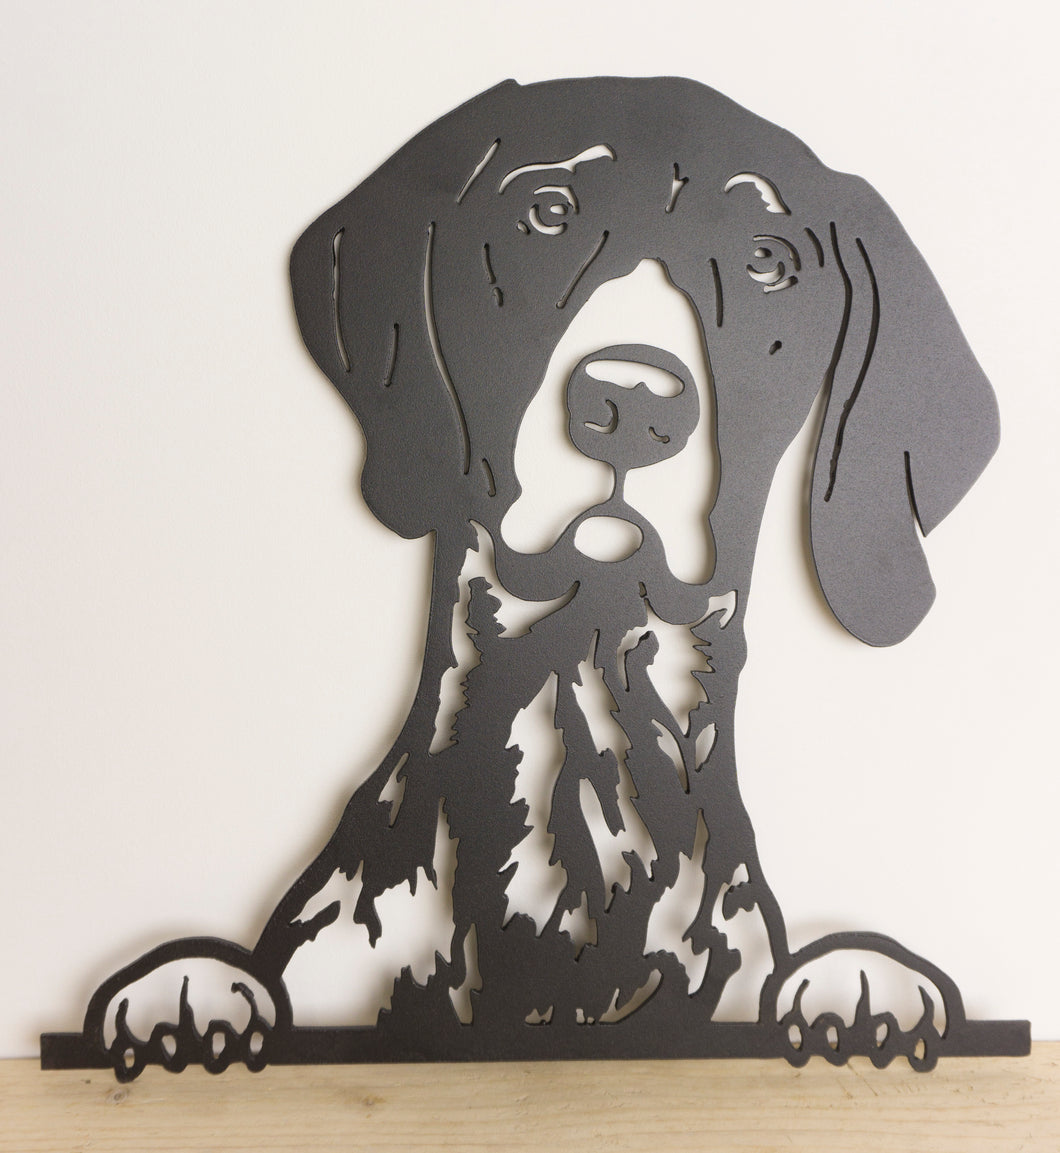 German Short Haired Pointer Peeping Dog Wall Art / Garden Art - Unique Metalcraft